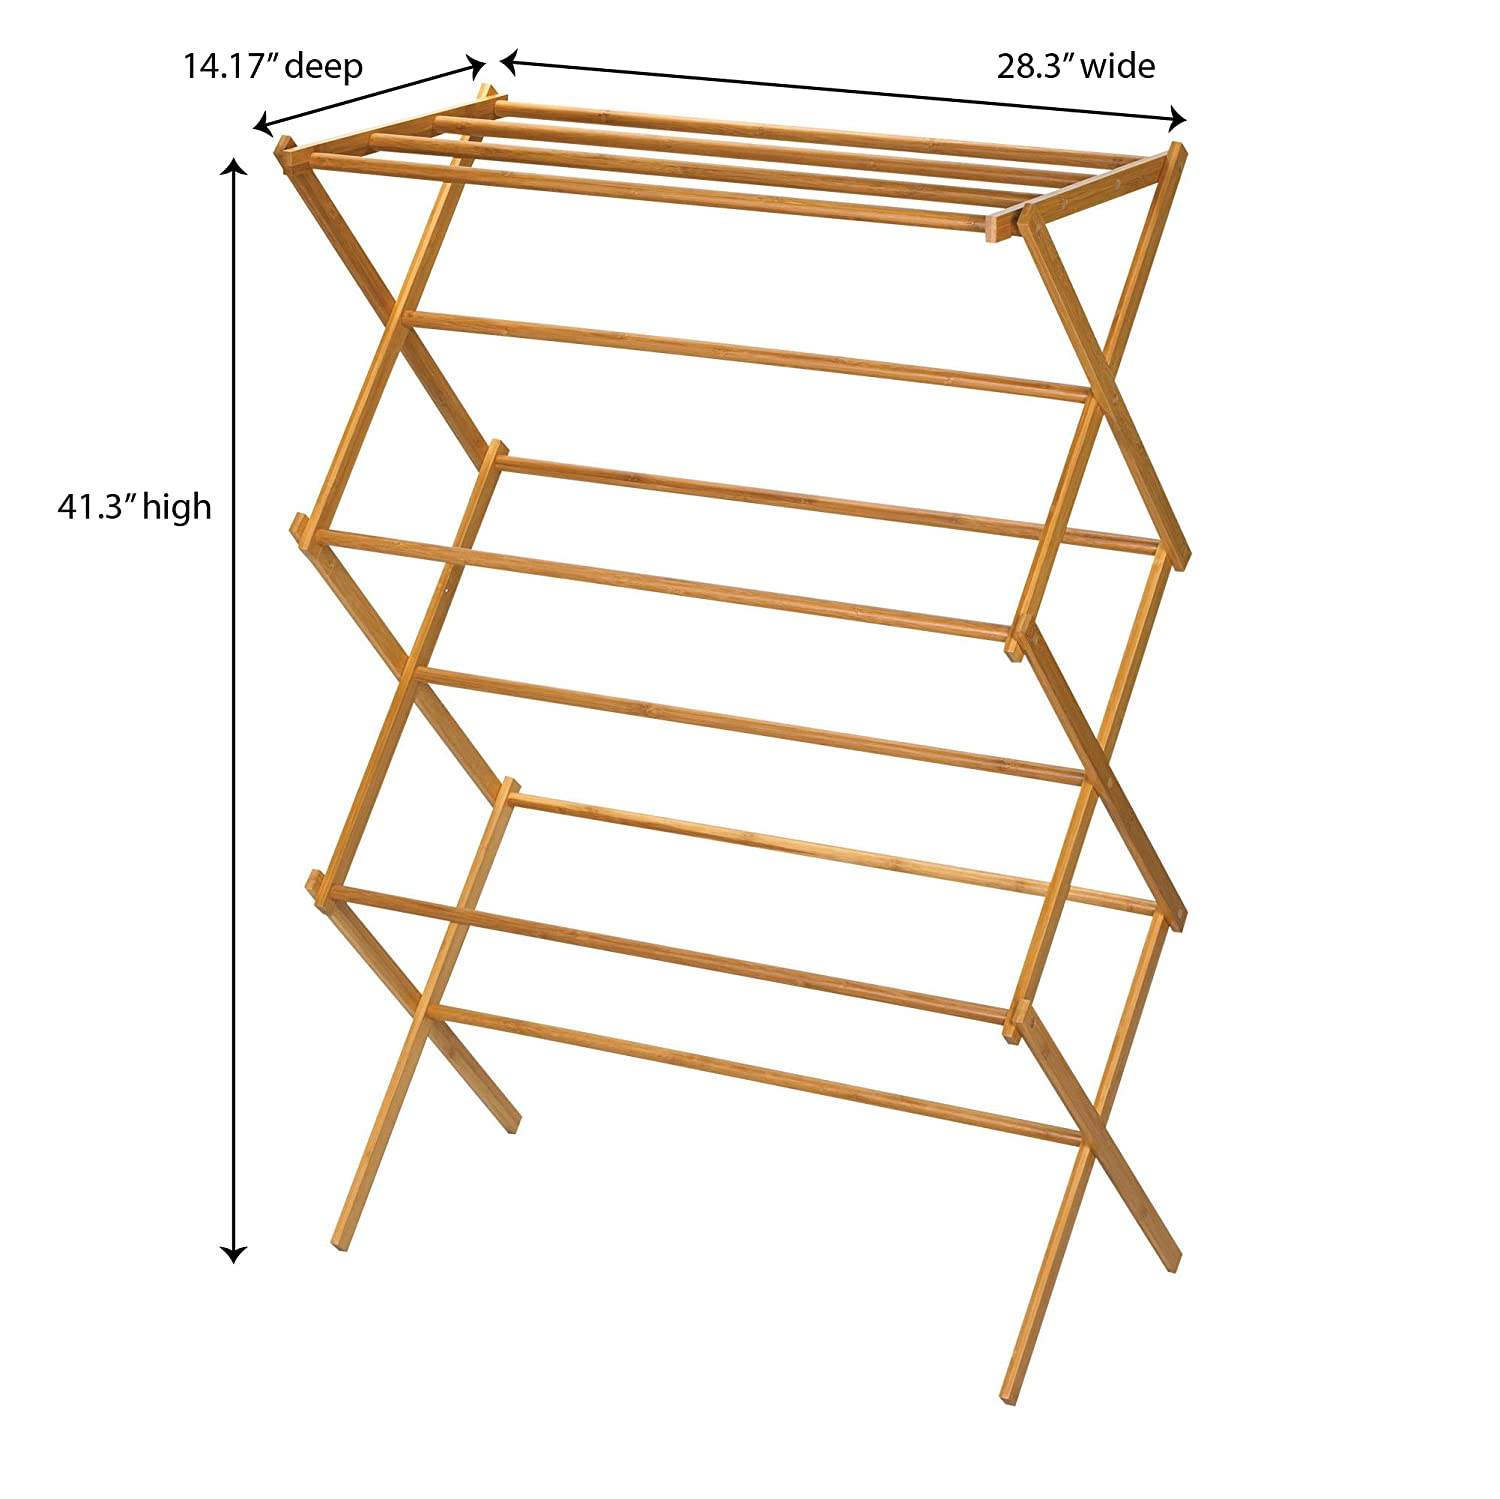 wooden clothes drying rack tall indoor folding bamboo dry laundry garment hanger 716987278812 ebay. Black Bedroom Furniture Sets. Home Design Ideas